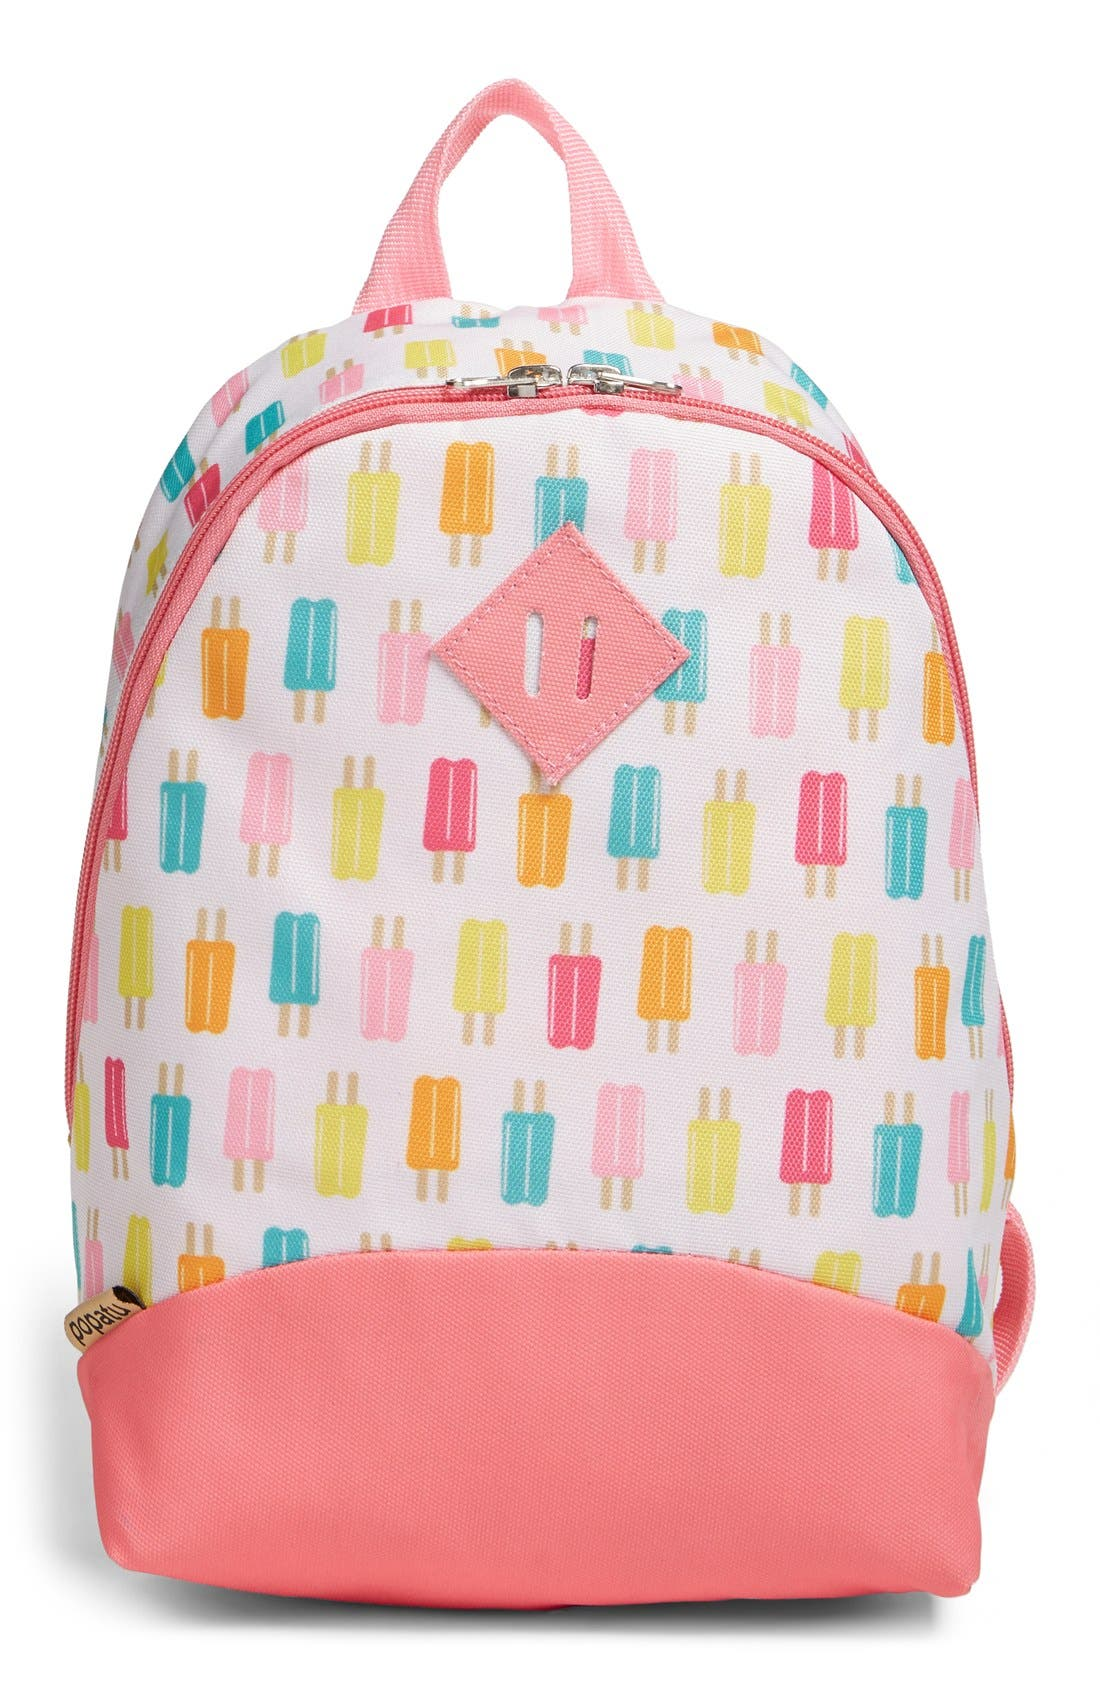 POPATU Print Backpack